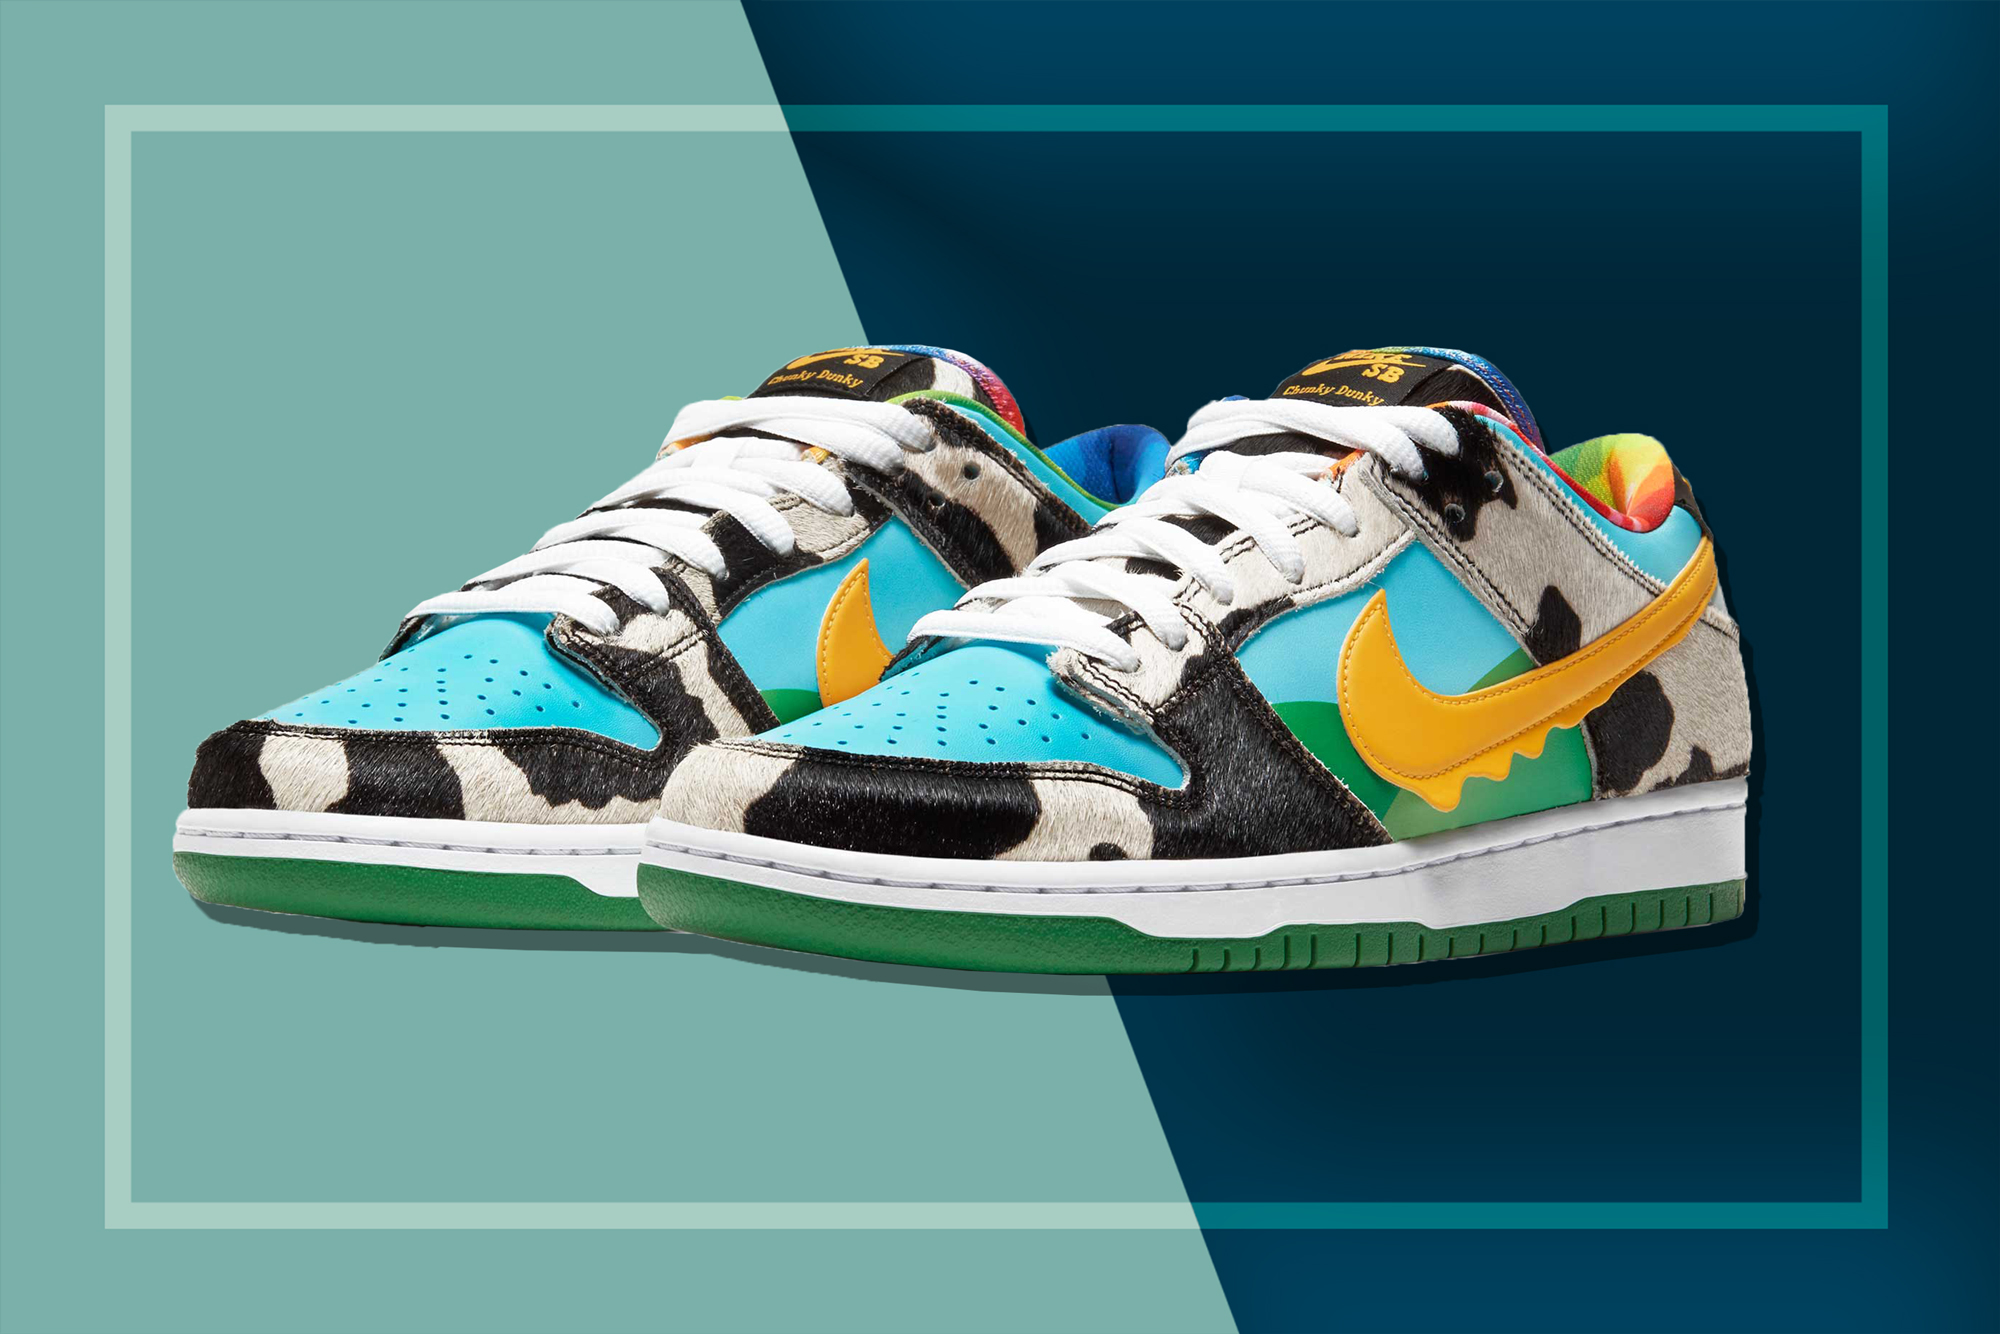 Ben & Jerry's x Nike Collaboration | Chunky Ducky Shoes